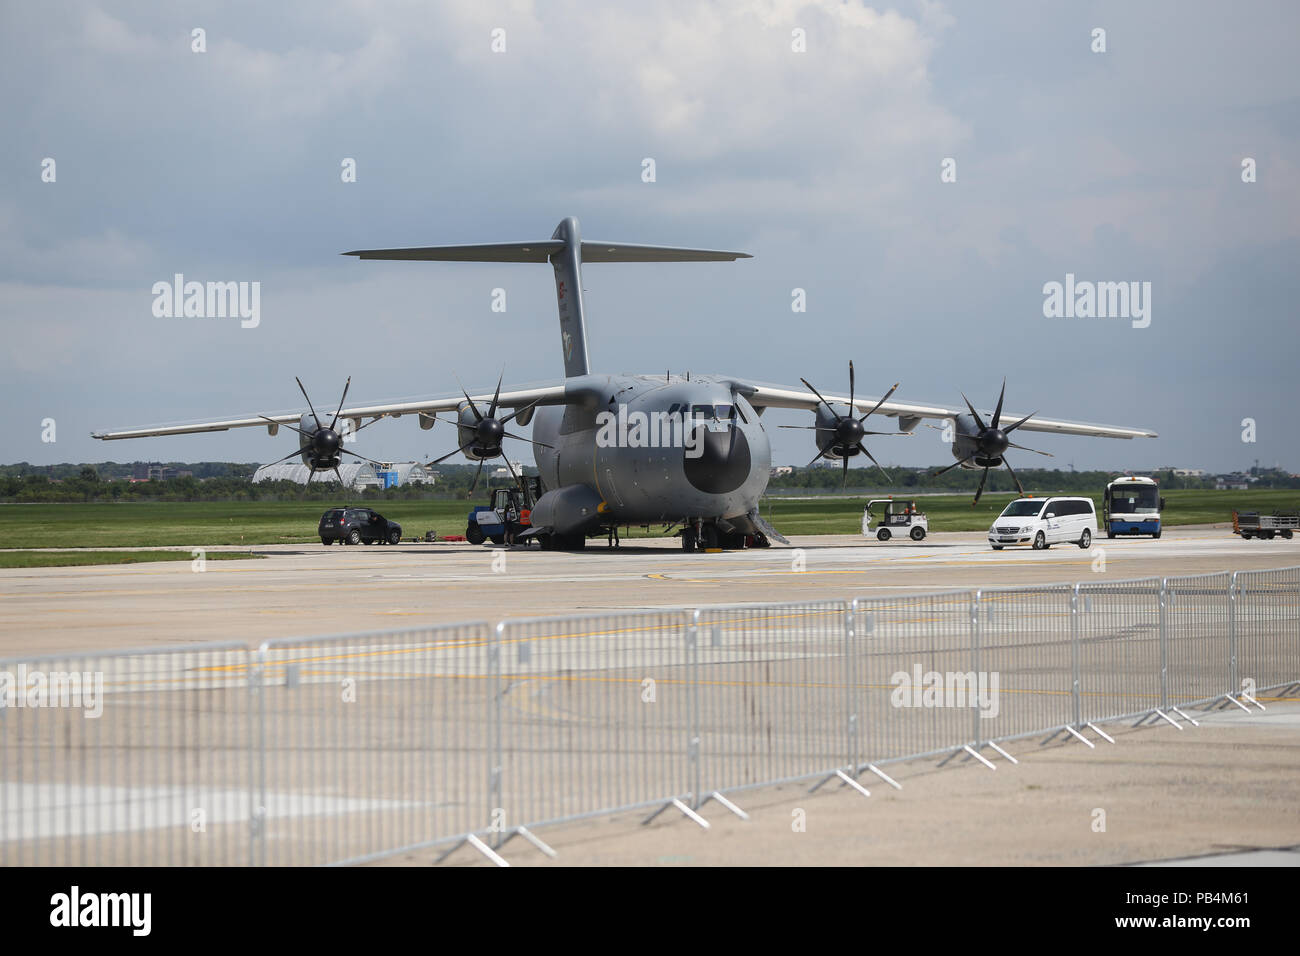 BUCHAREST, ROMANIA - July 25, 2018: Airbus A400 military cargo plane on the tracks of Baneasa International Airport - Stock Image